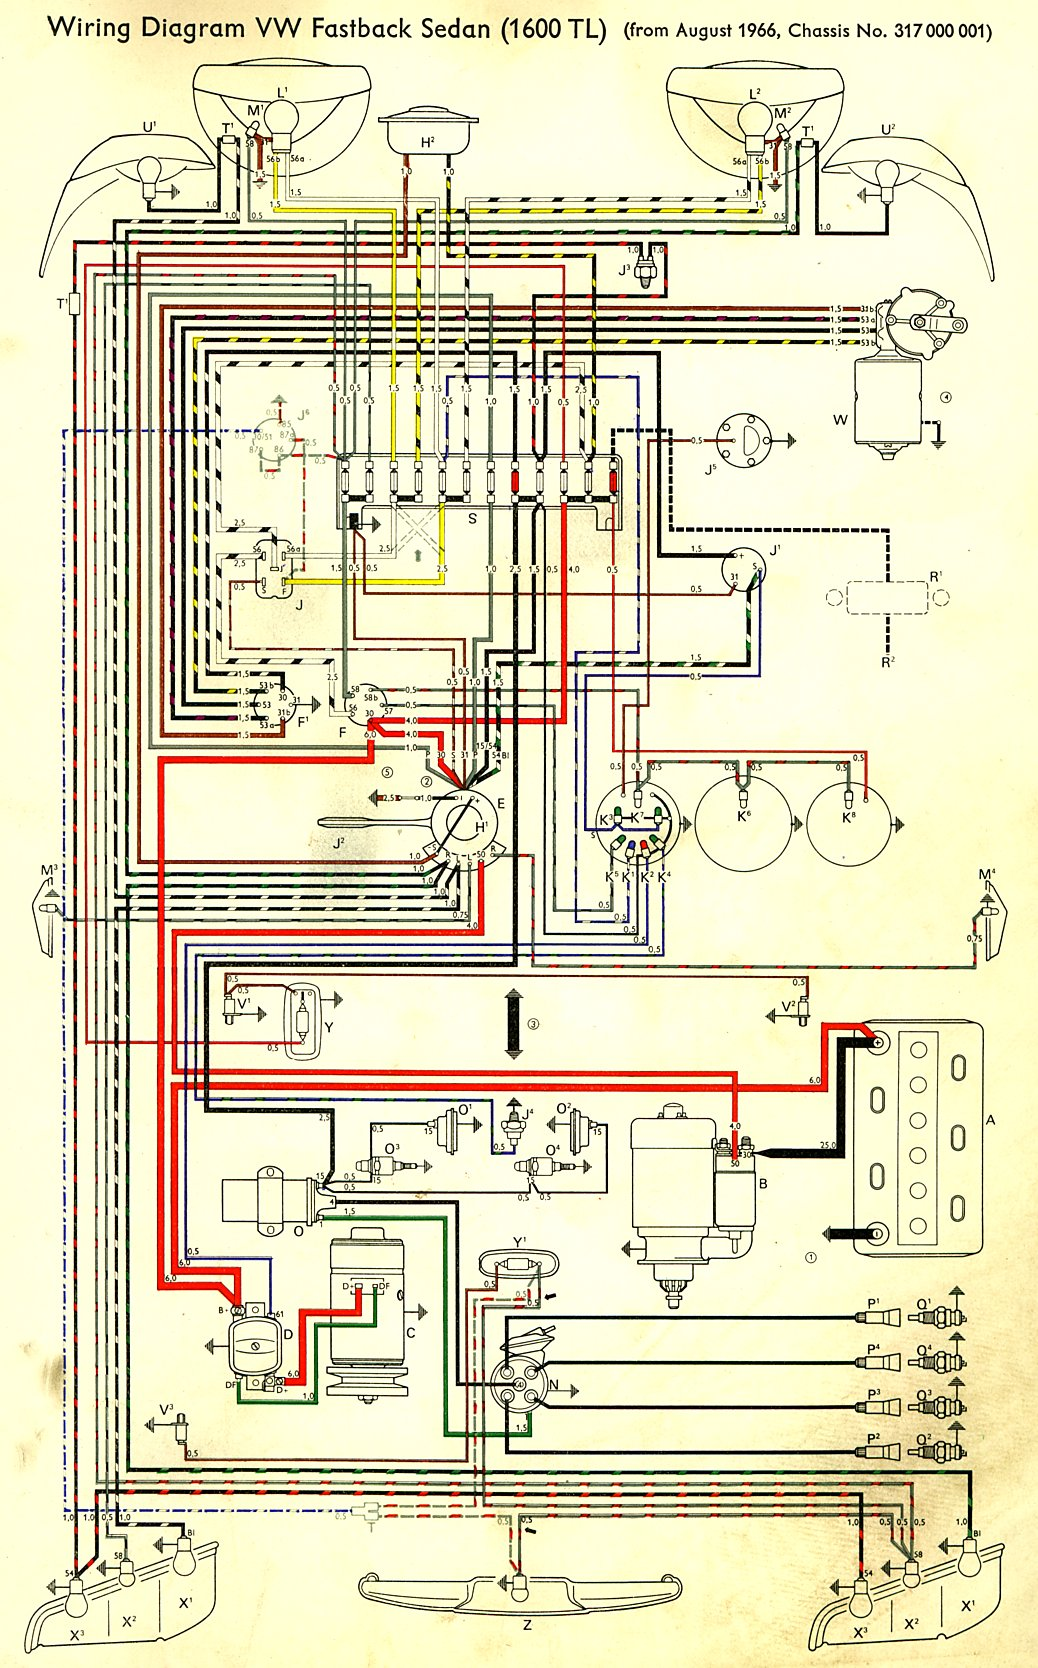 thesamba com type 3 wiring diagrams VW Voltage Regulator Wiring Diagram Vw Type 3 Wiring Diagram #1